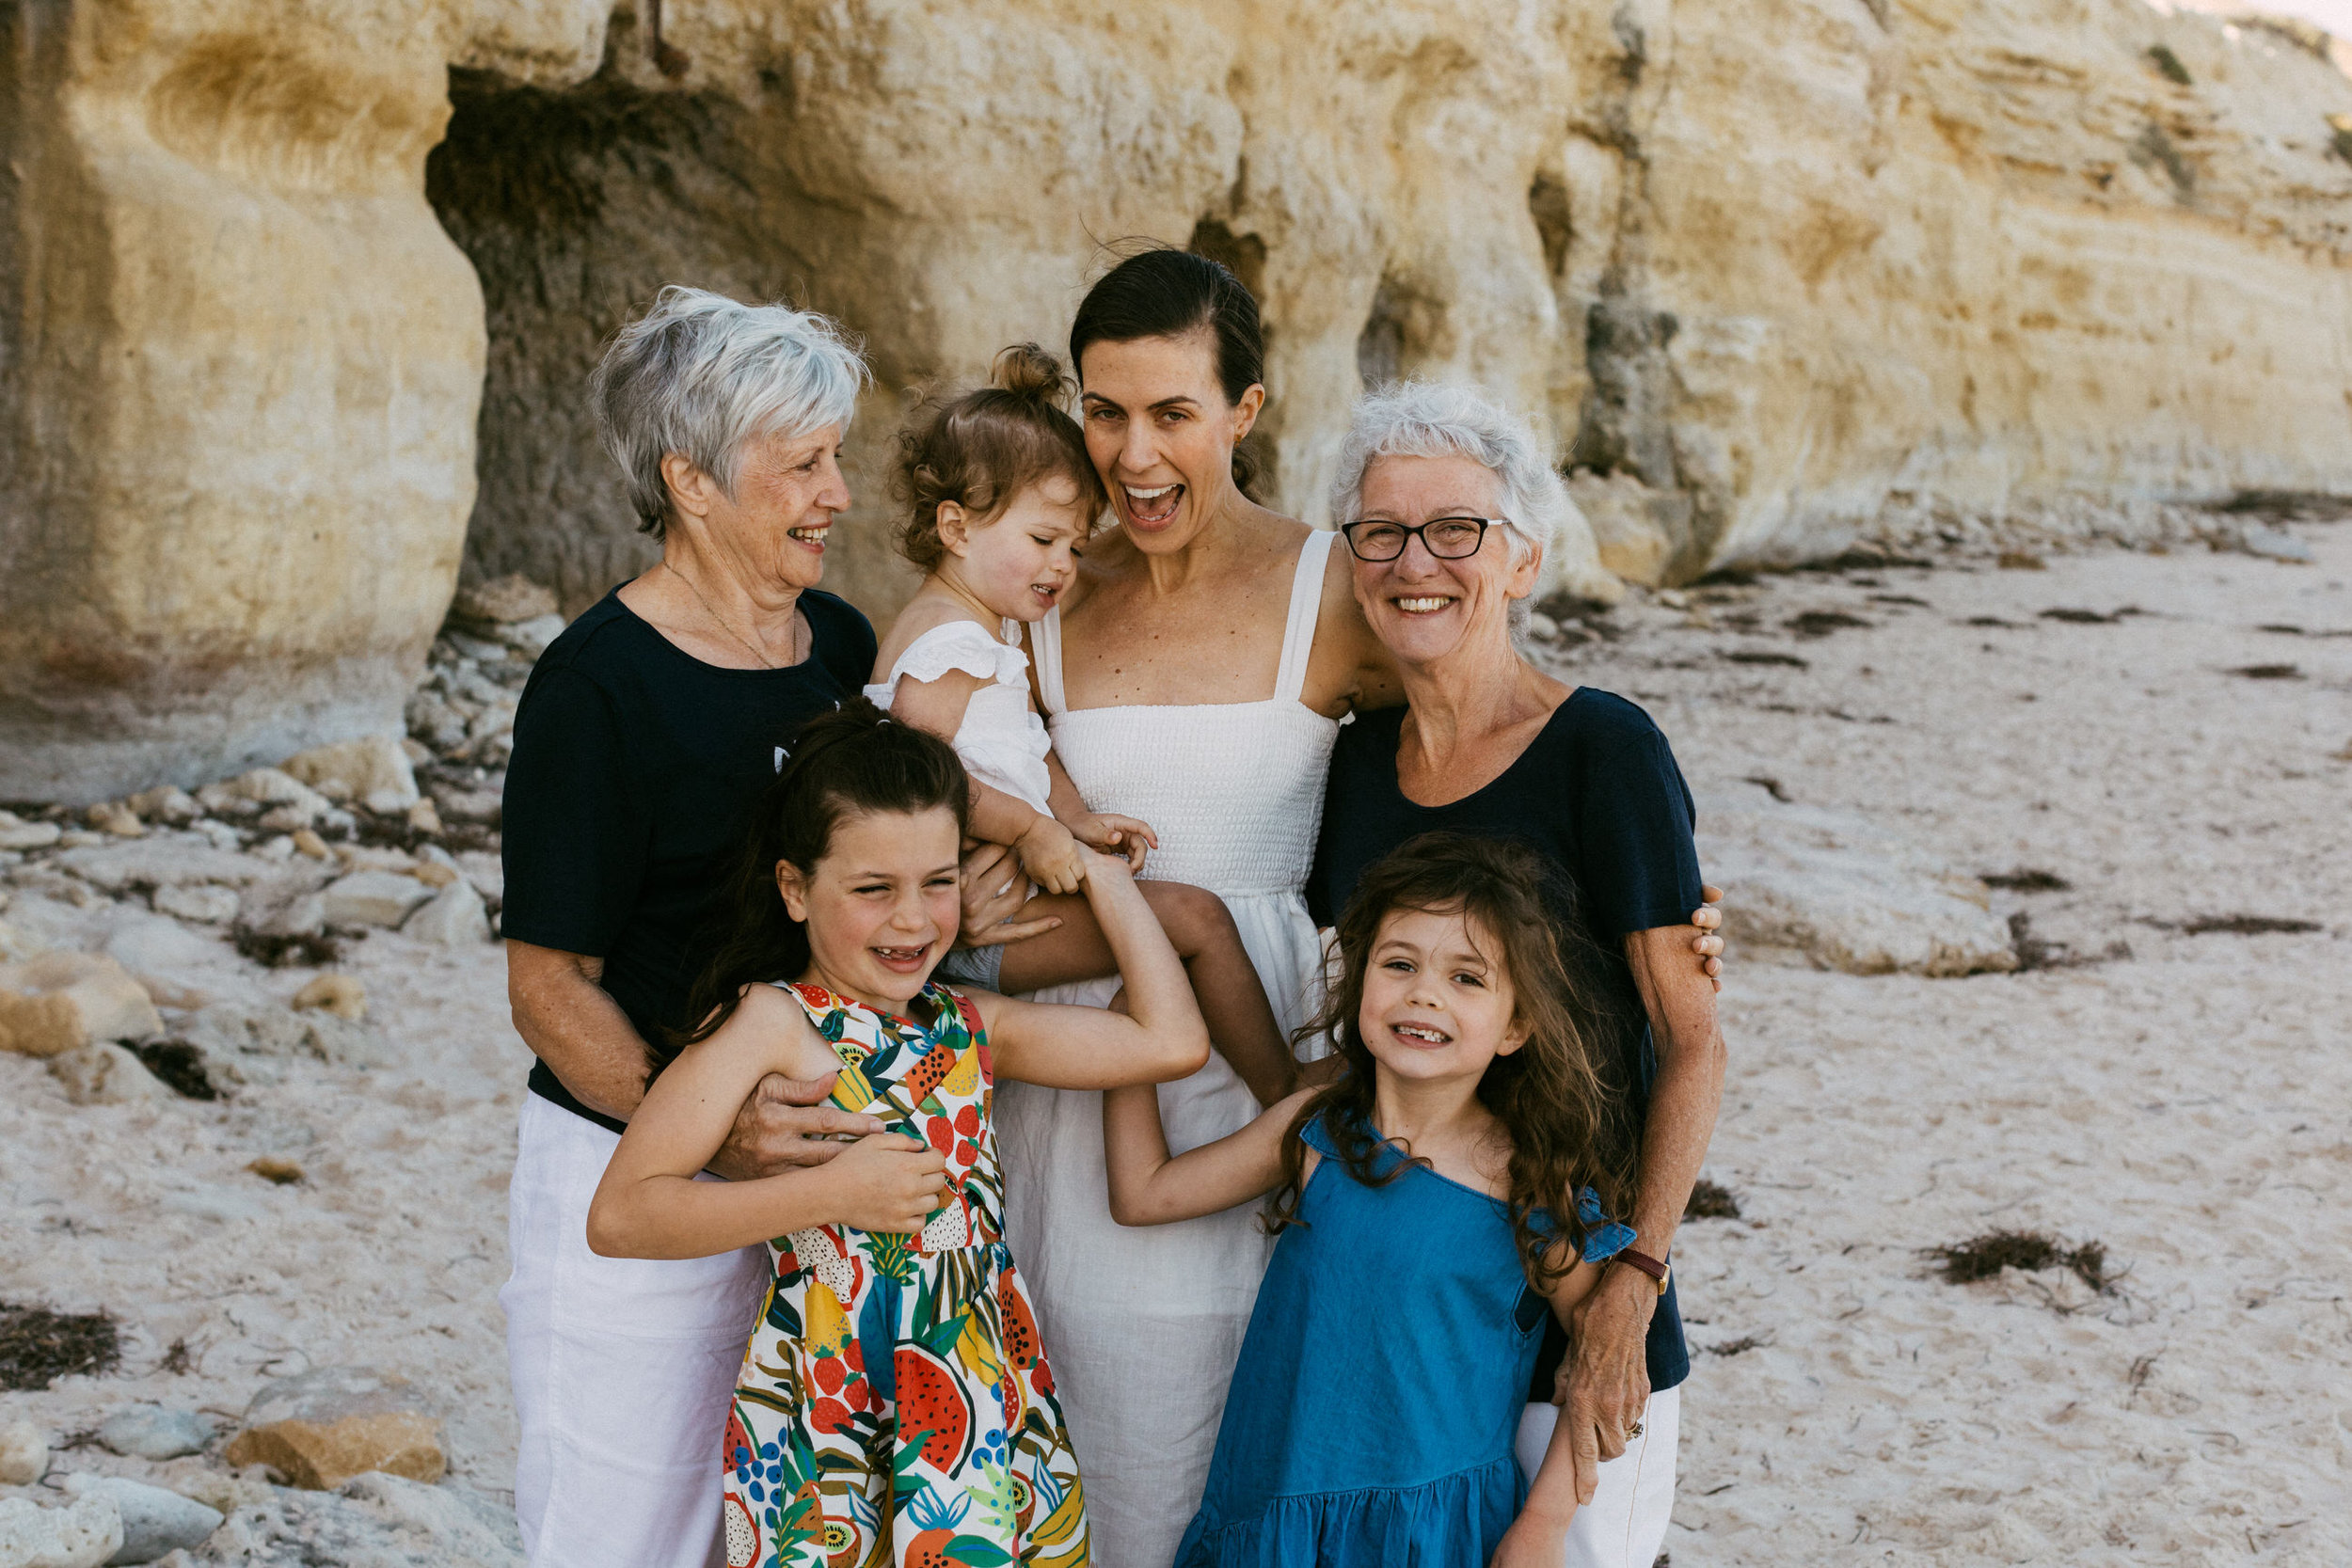 Natural Portraits for Large Family on Beach South Australia 021.JPG